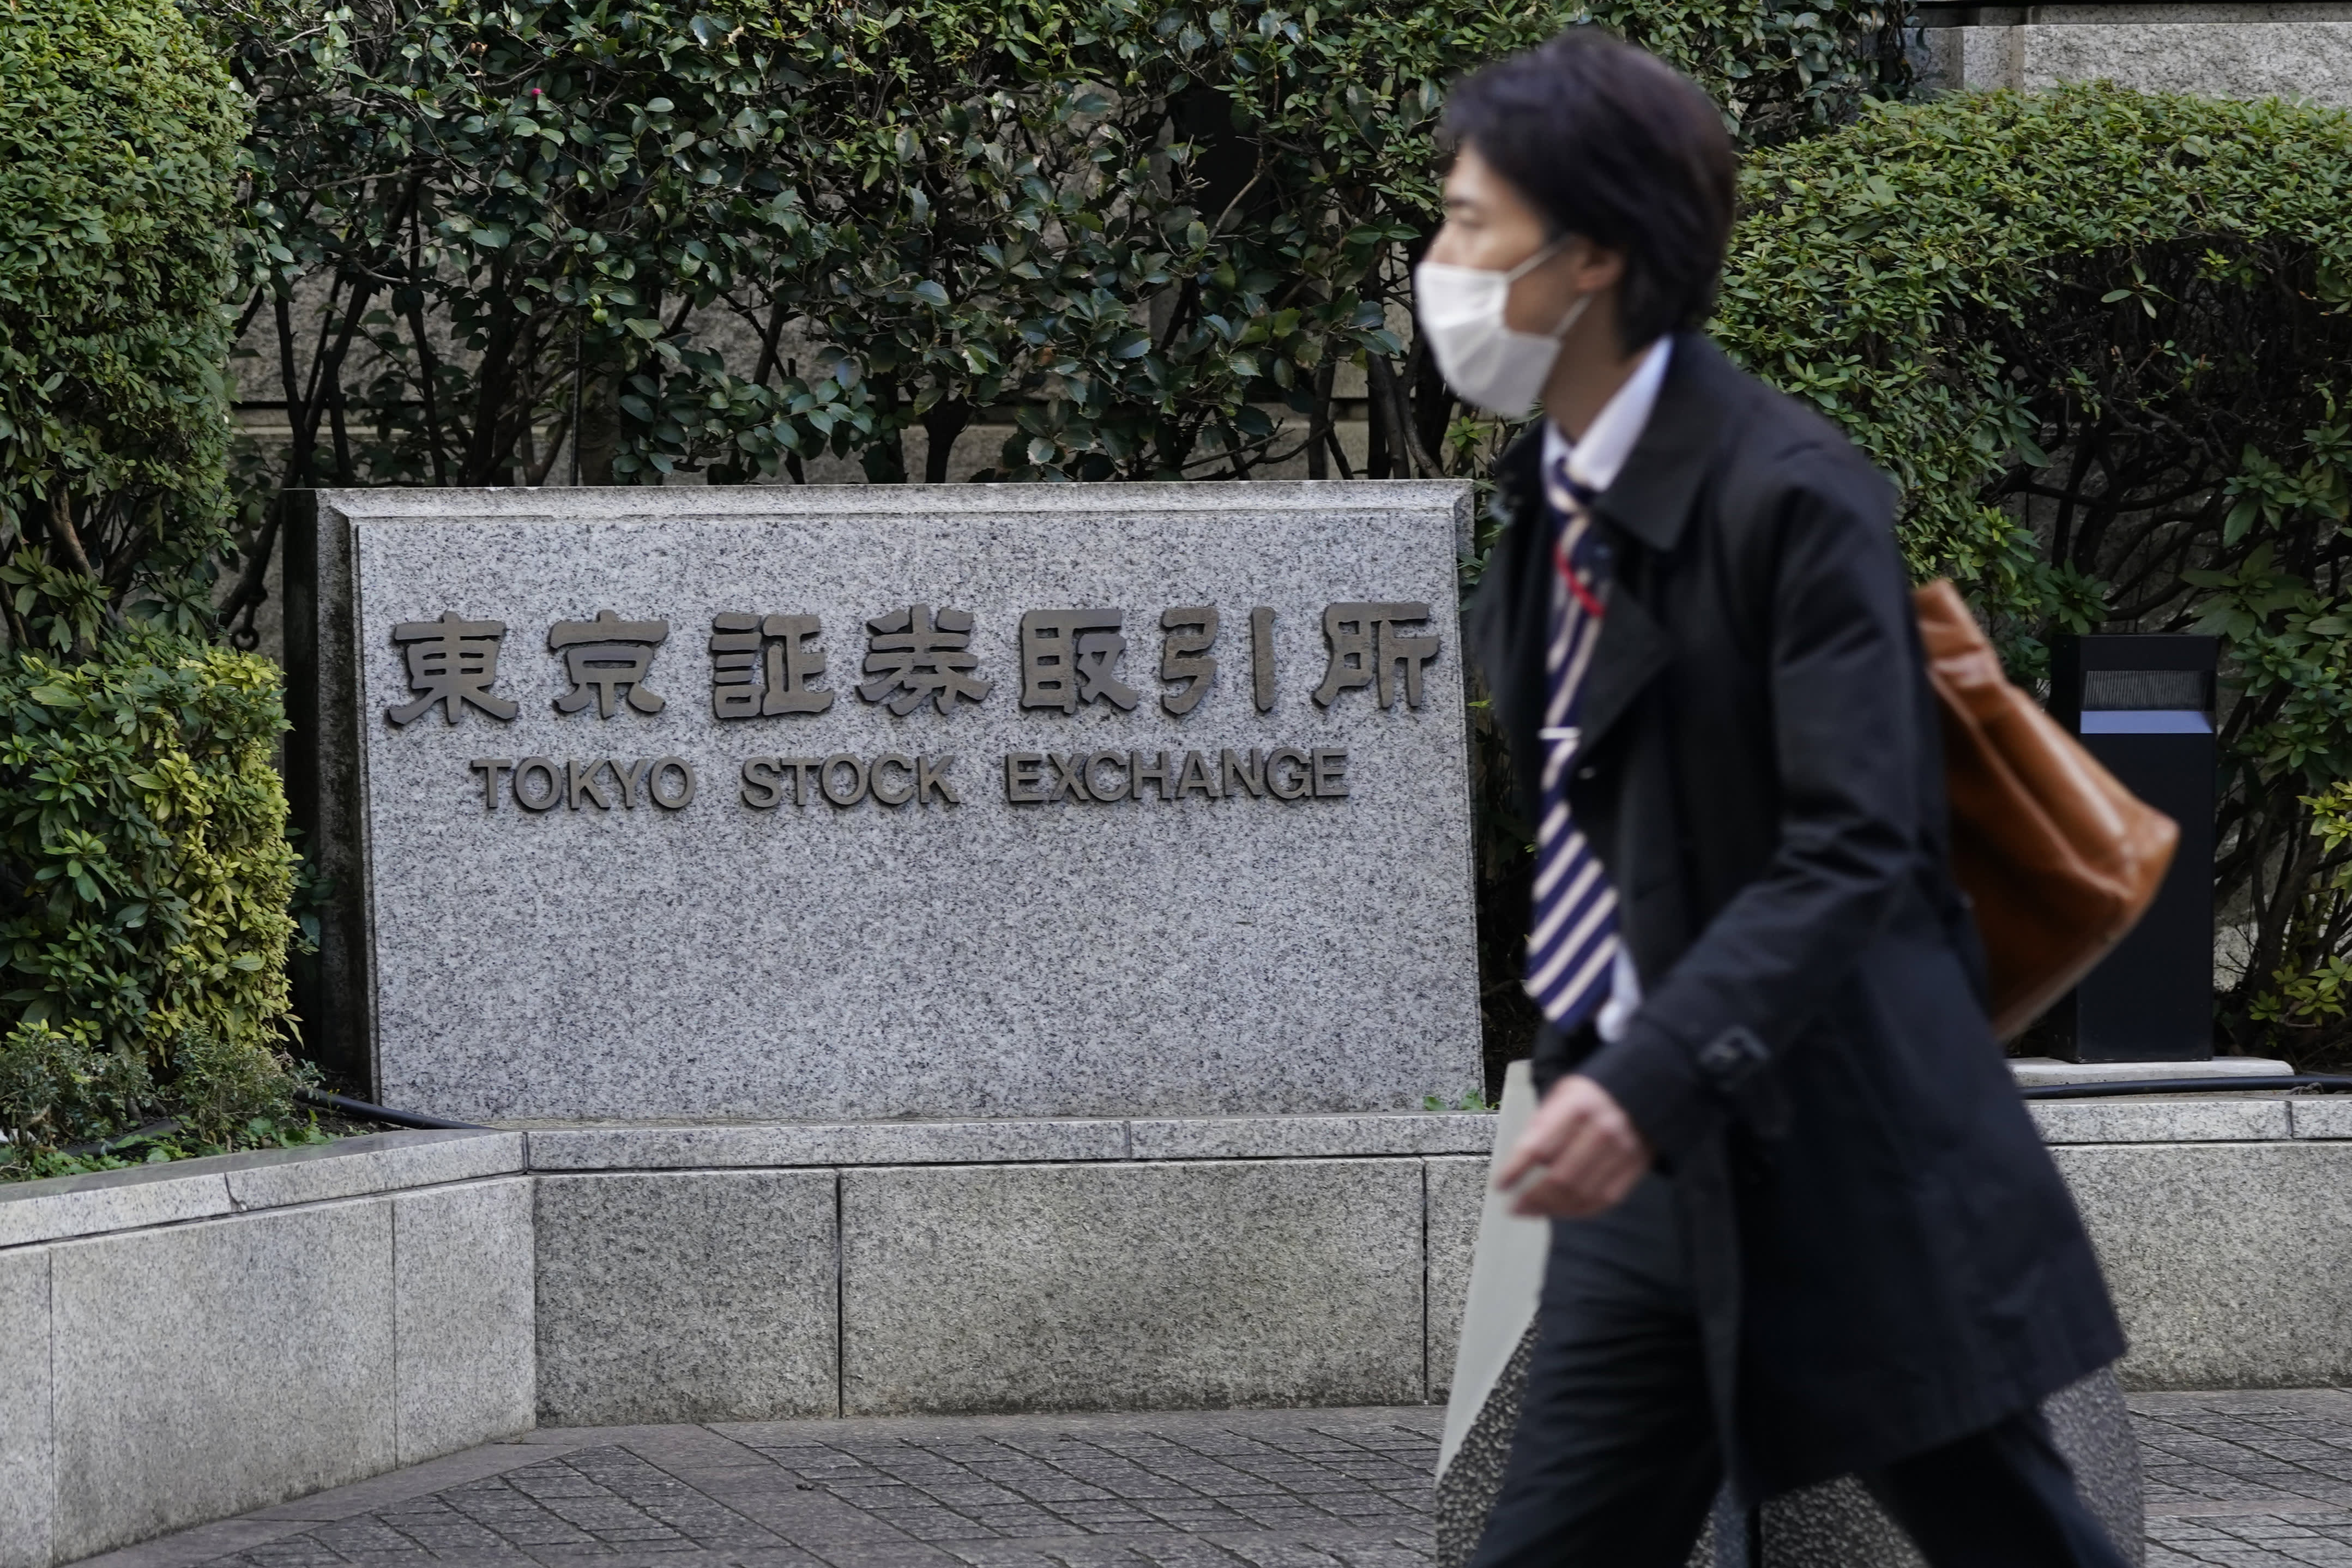 Japan stocks set to trade higher as Wall Street rises to new records overnight; Australian GDP data ahead